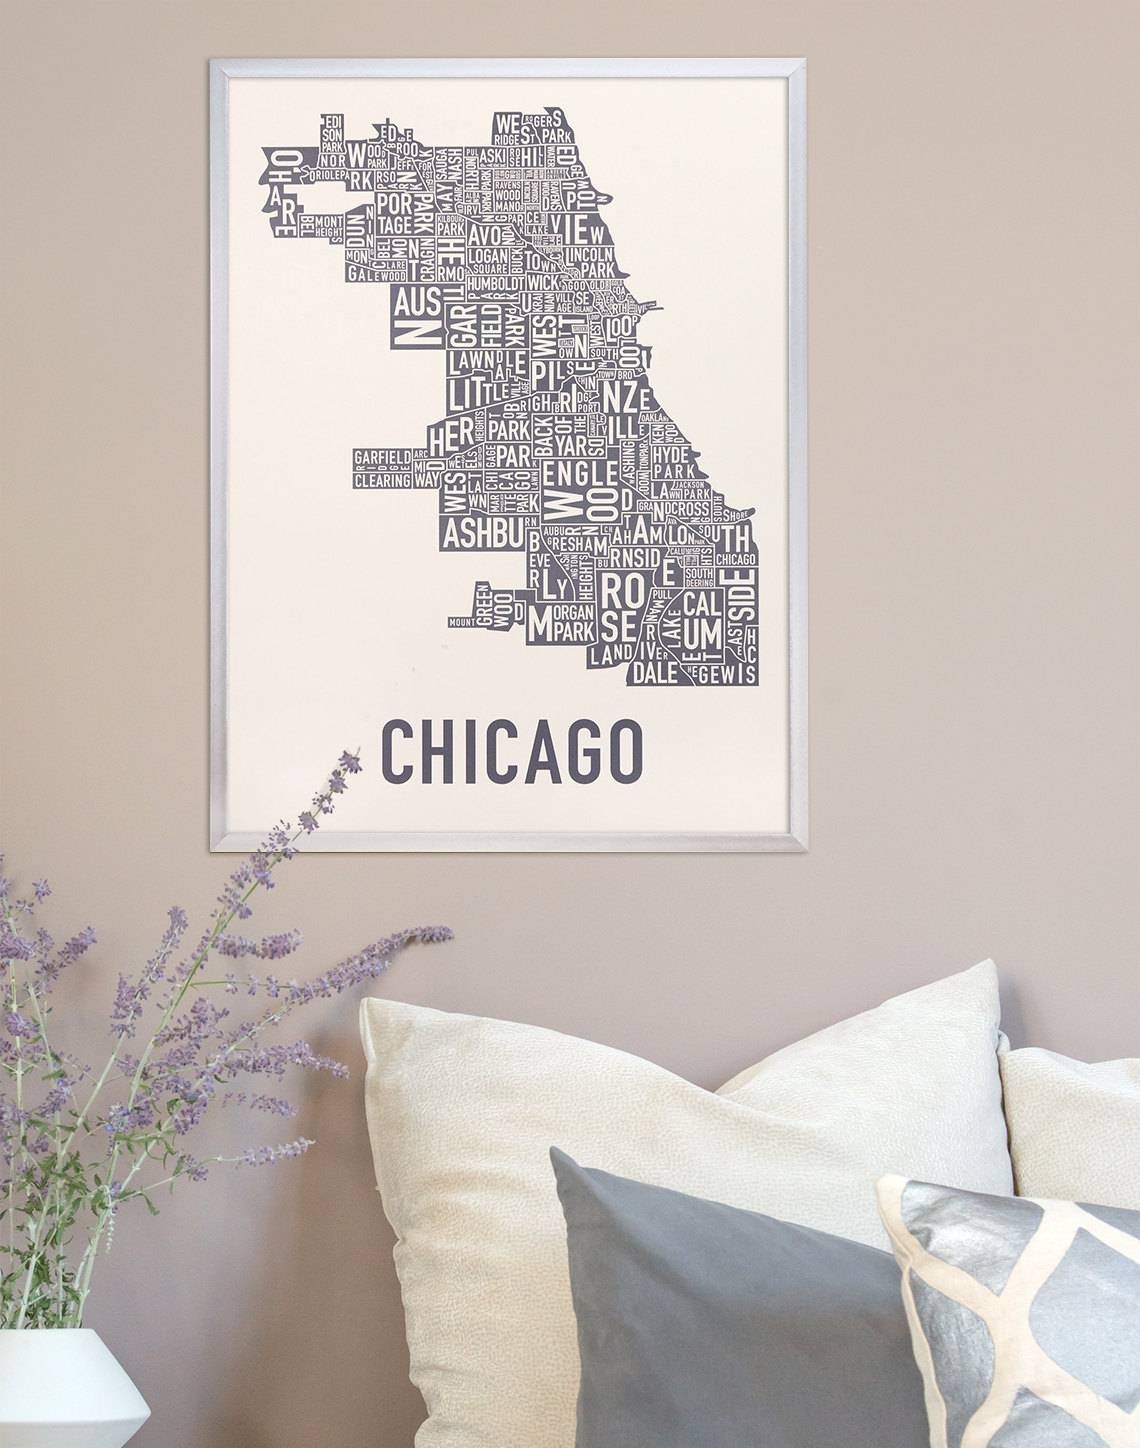 Chicago Neighborhood Map Poster The Original Chicago Intended For Most Popular Chicago Neighborhood Map Wall Art (View 6 of 20)